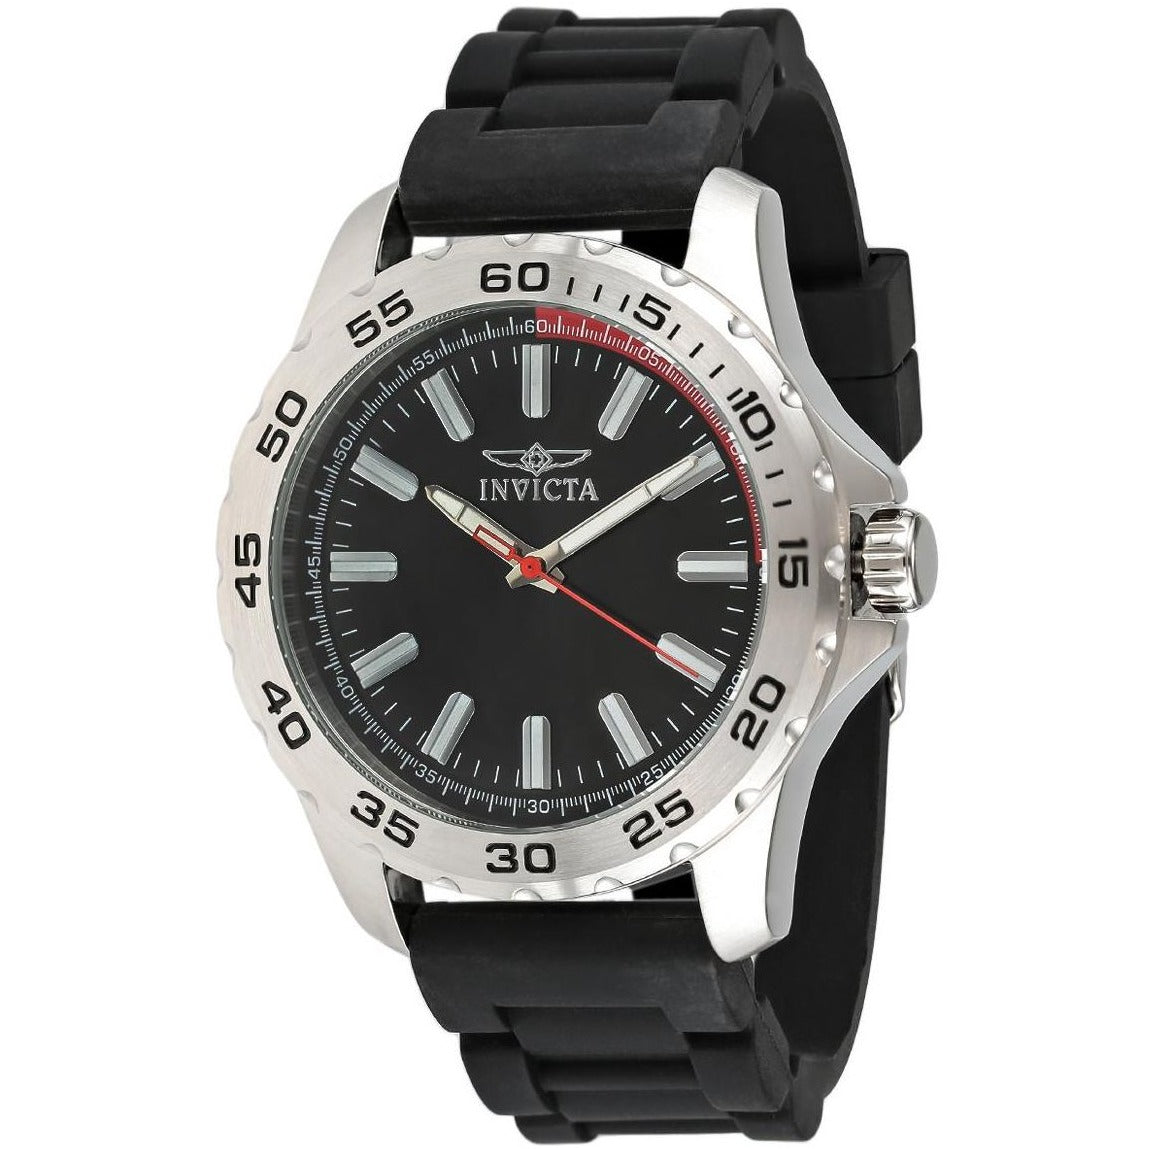 Invicta Men's 'Pro Diver' Quartz Stainless Steel Casual Watch Model 21855